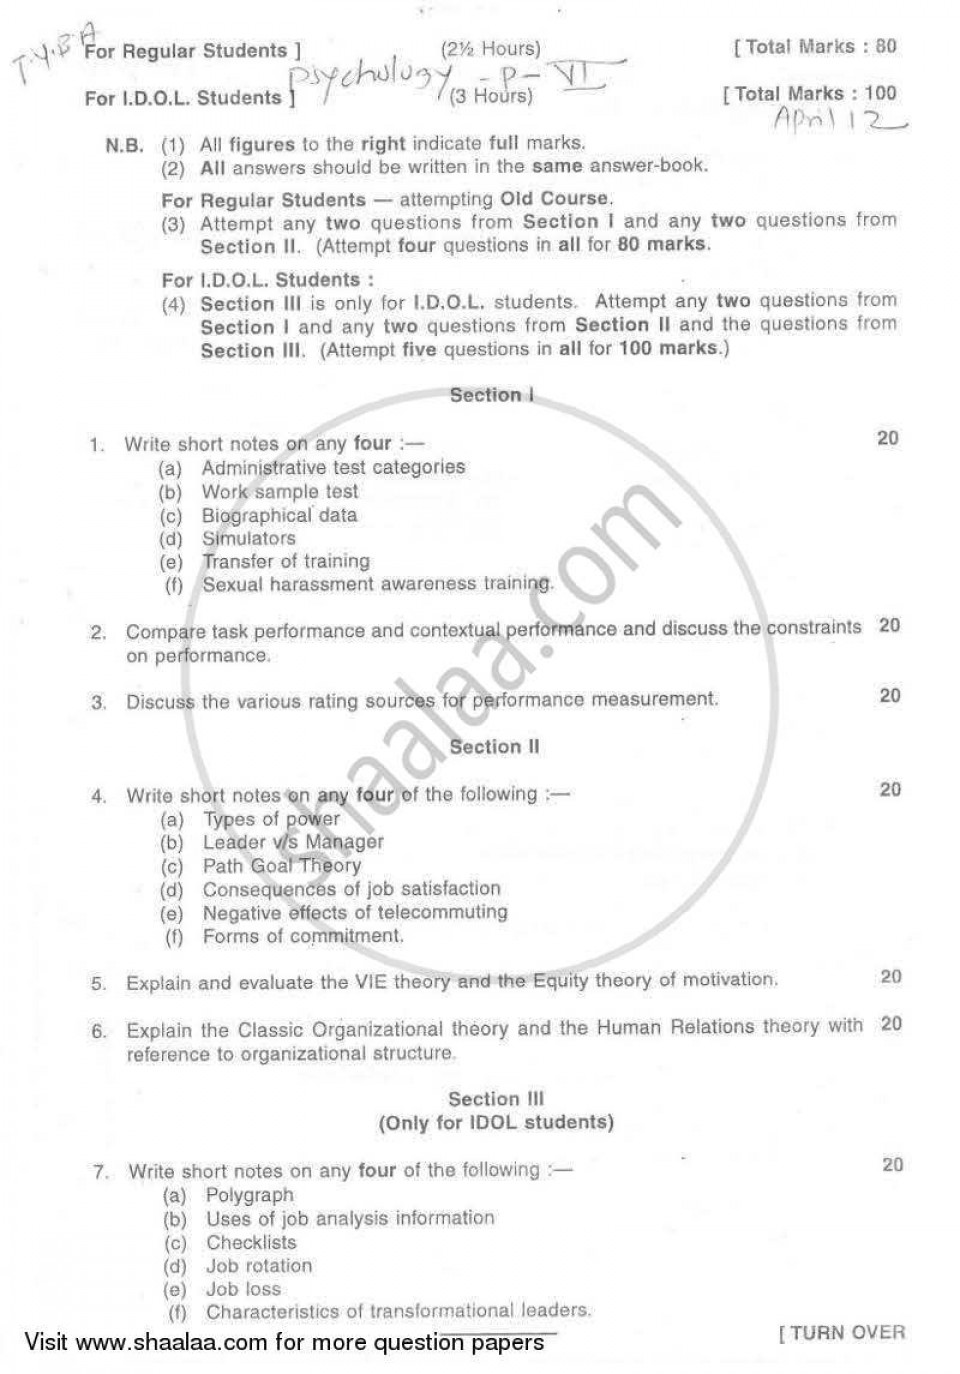 017 Psychologyearch Paper On Dreams University Of Mumbai Bachelor Industrial Organizational T Y Yearly Pattern Semester Tyba 2011 29a03925dfc524f2aa4cb10e4d3da996a Singular Psychology Research Topics Articles 2017 960